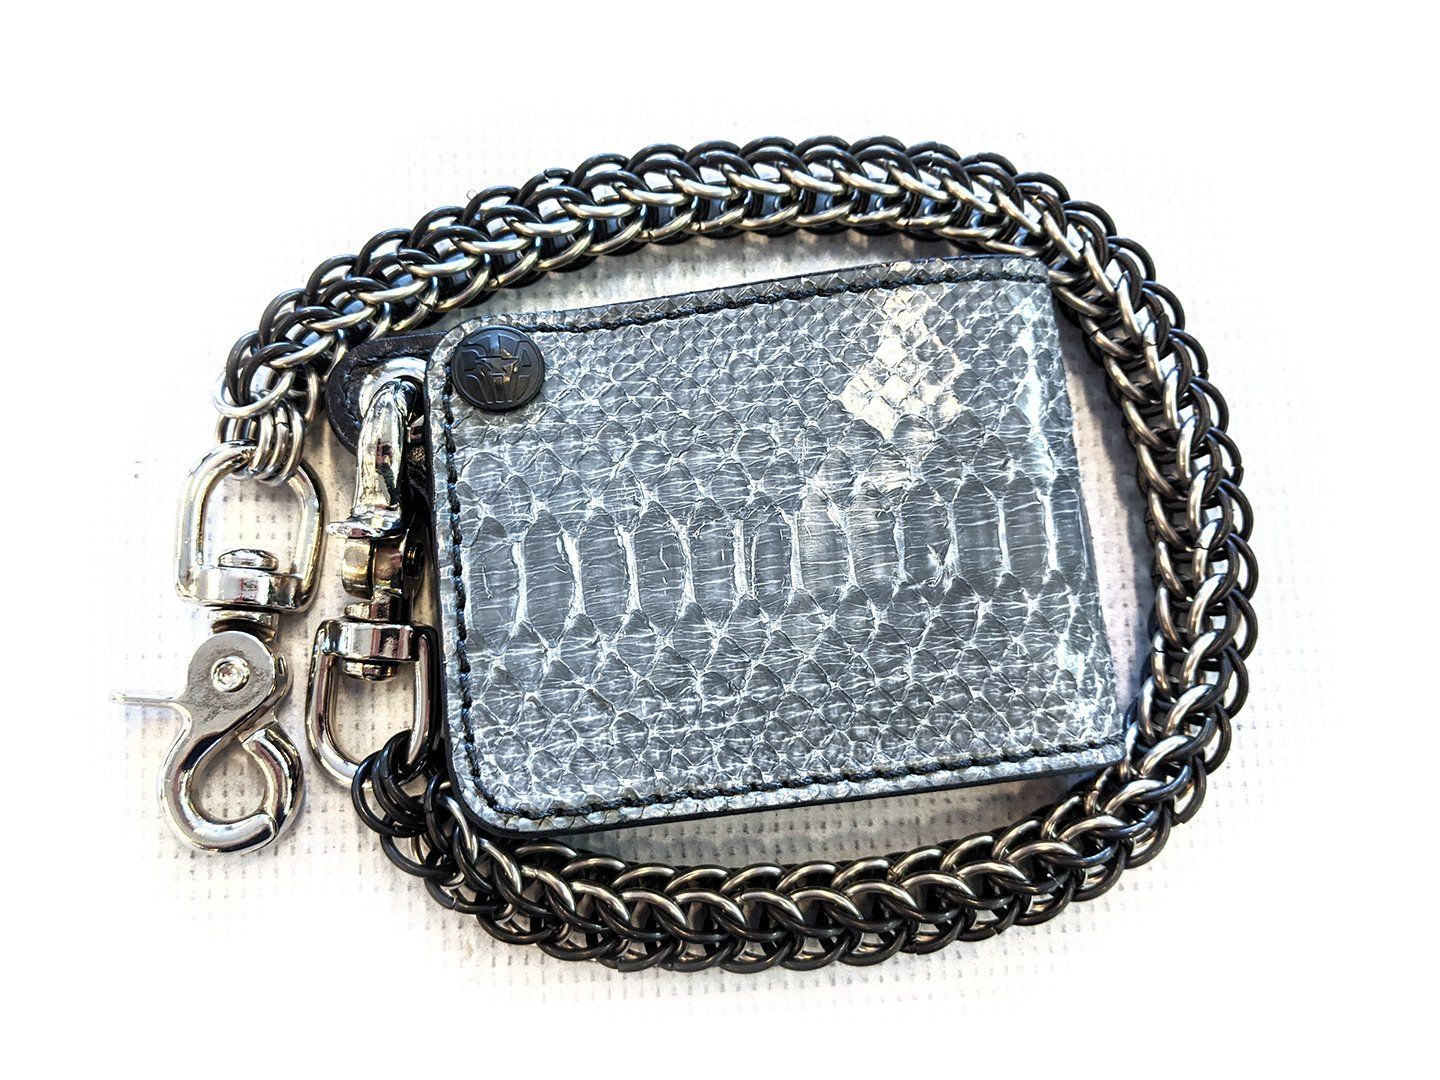 Mini Bifold Leather Chain Wallet - Earl Grey Python